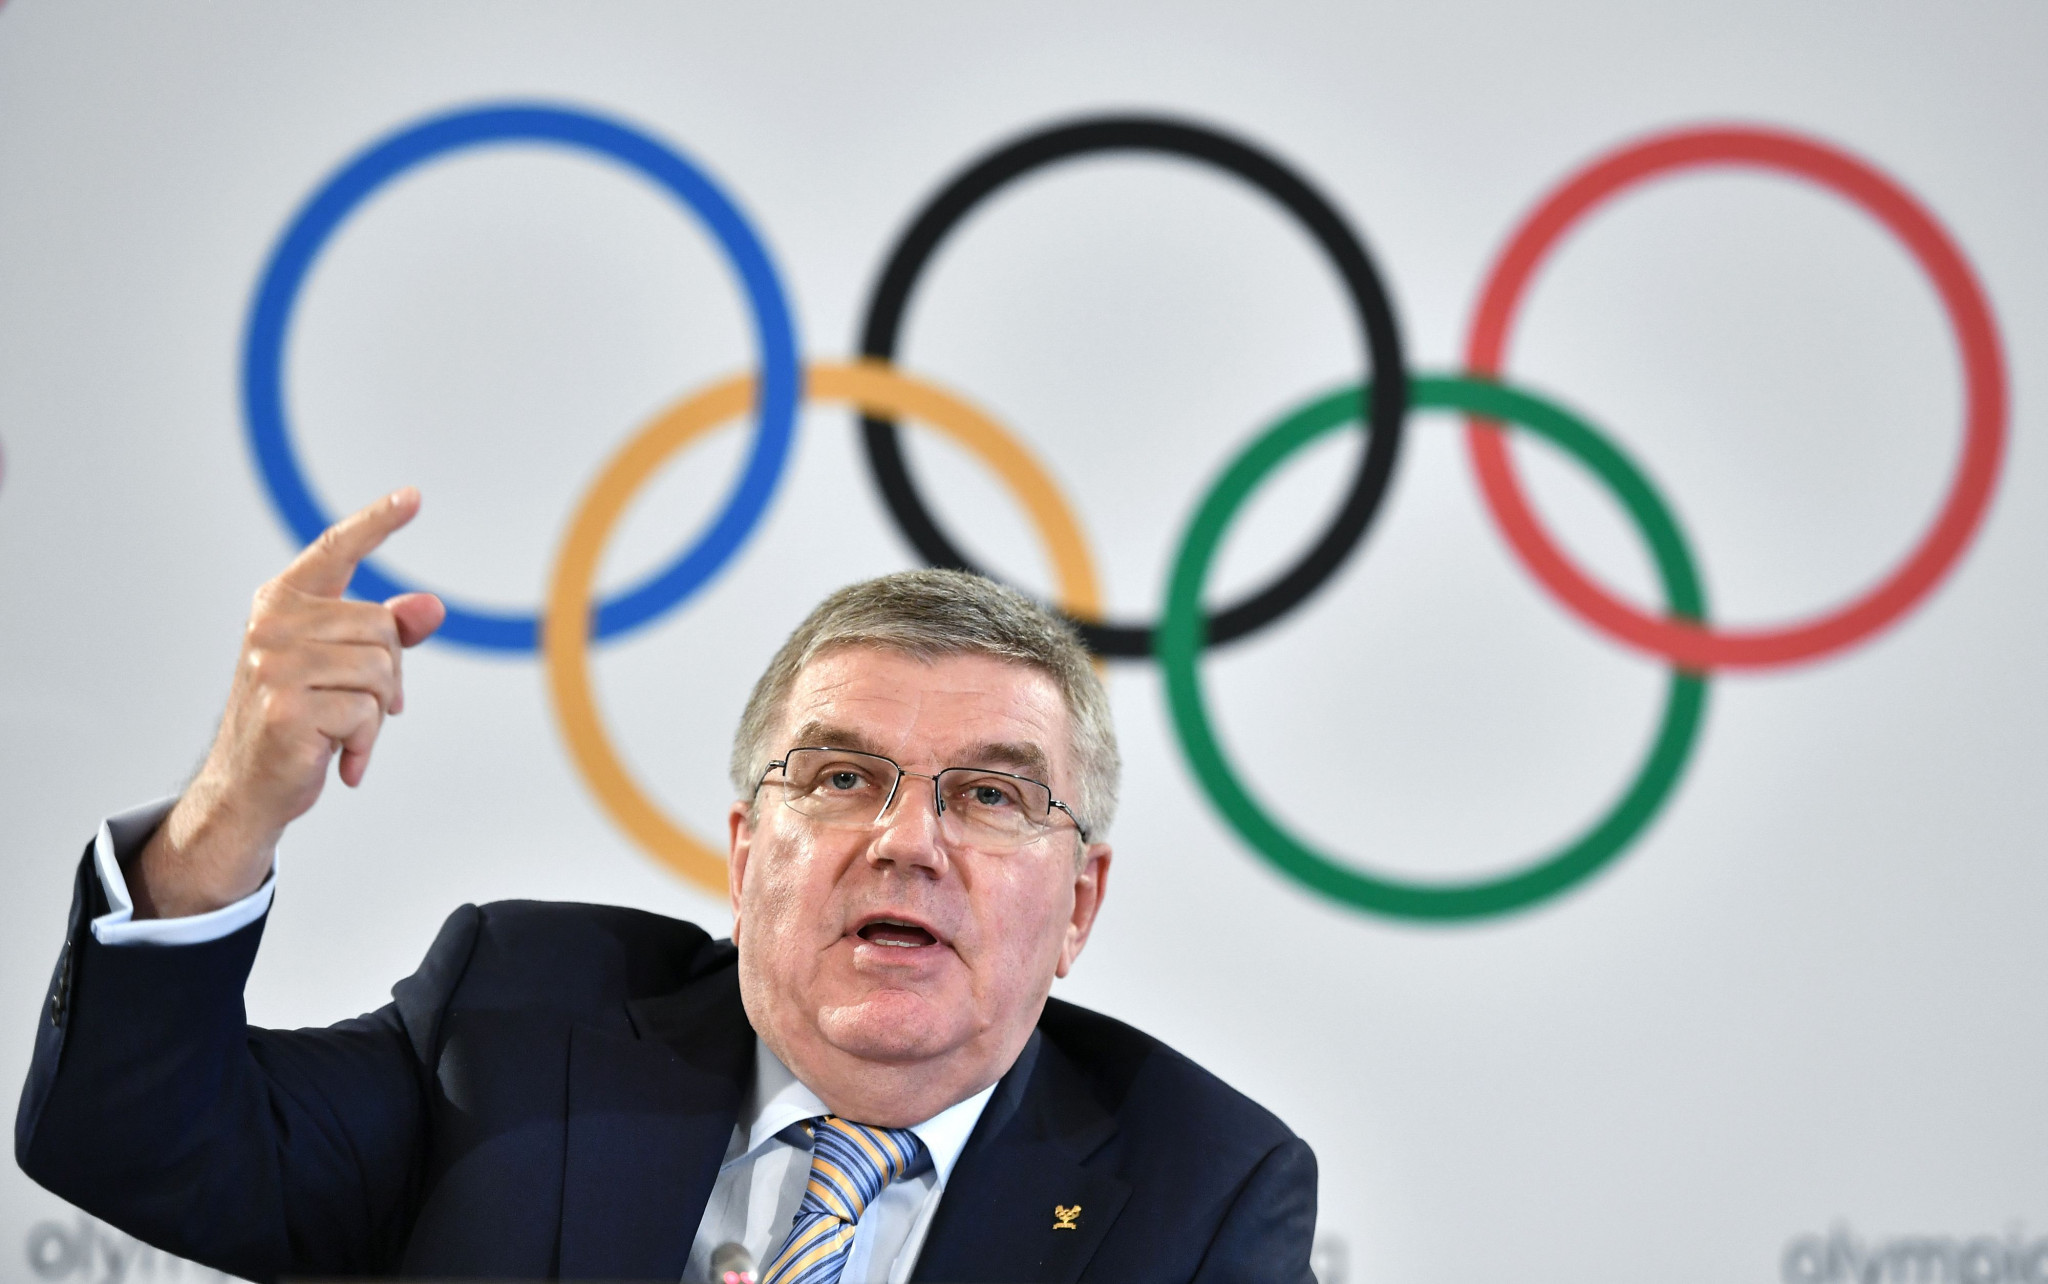 International Olympic Committee President Thomas Bach has revealed that the organisation has accepted the idea of holding the Tokyo 2020 Olympic flame lighting ceremony on March 11 of that year ©Getty Images